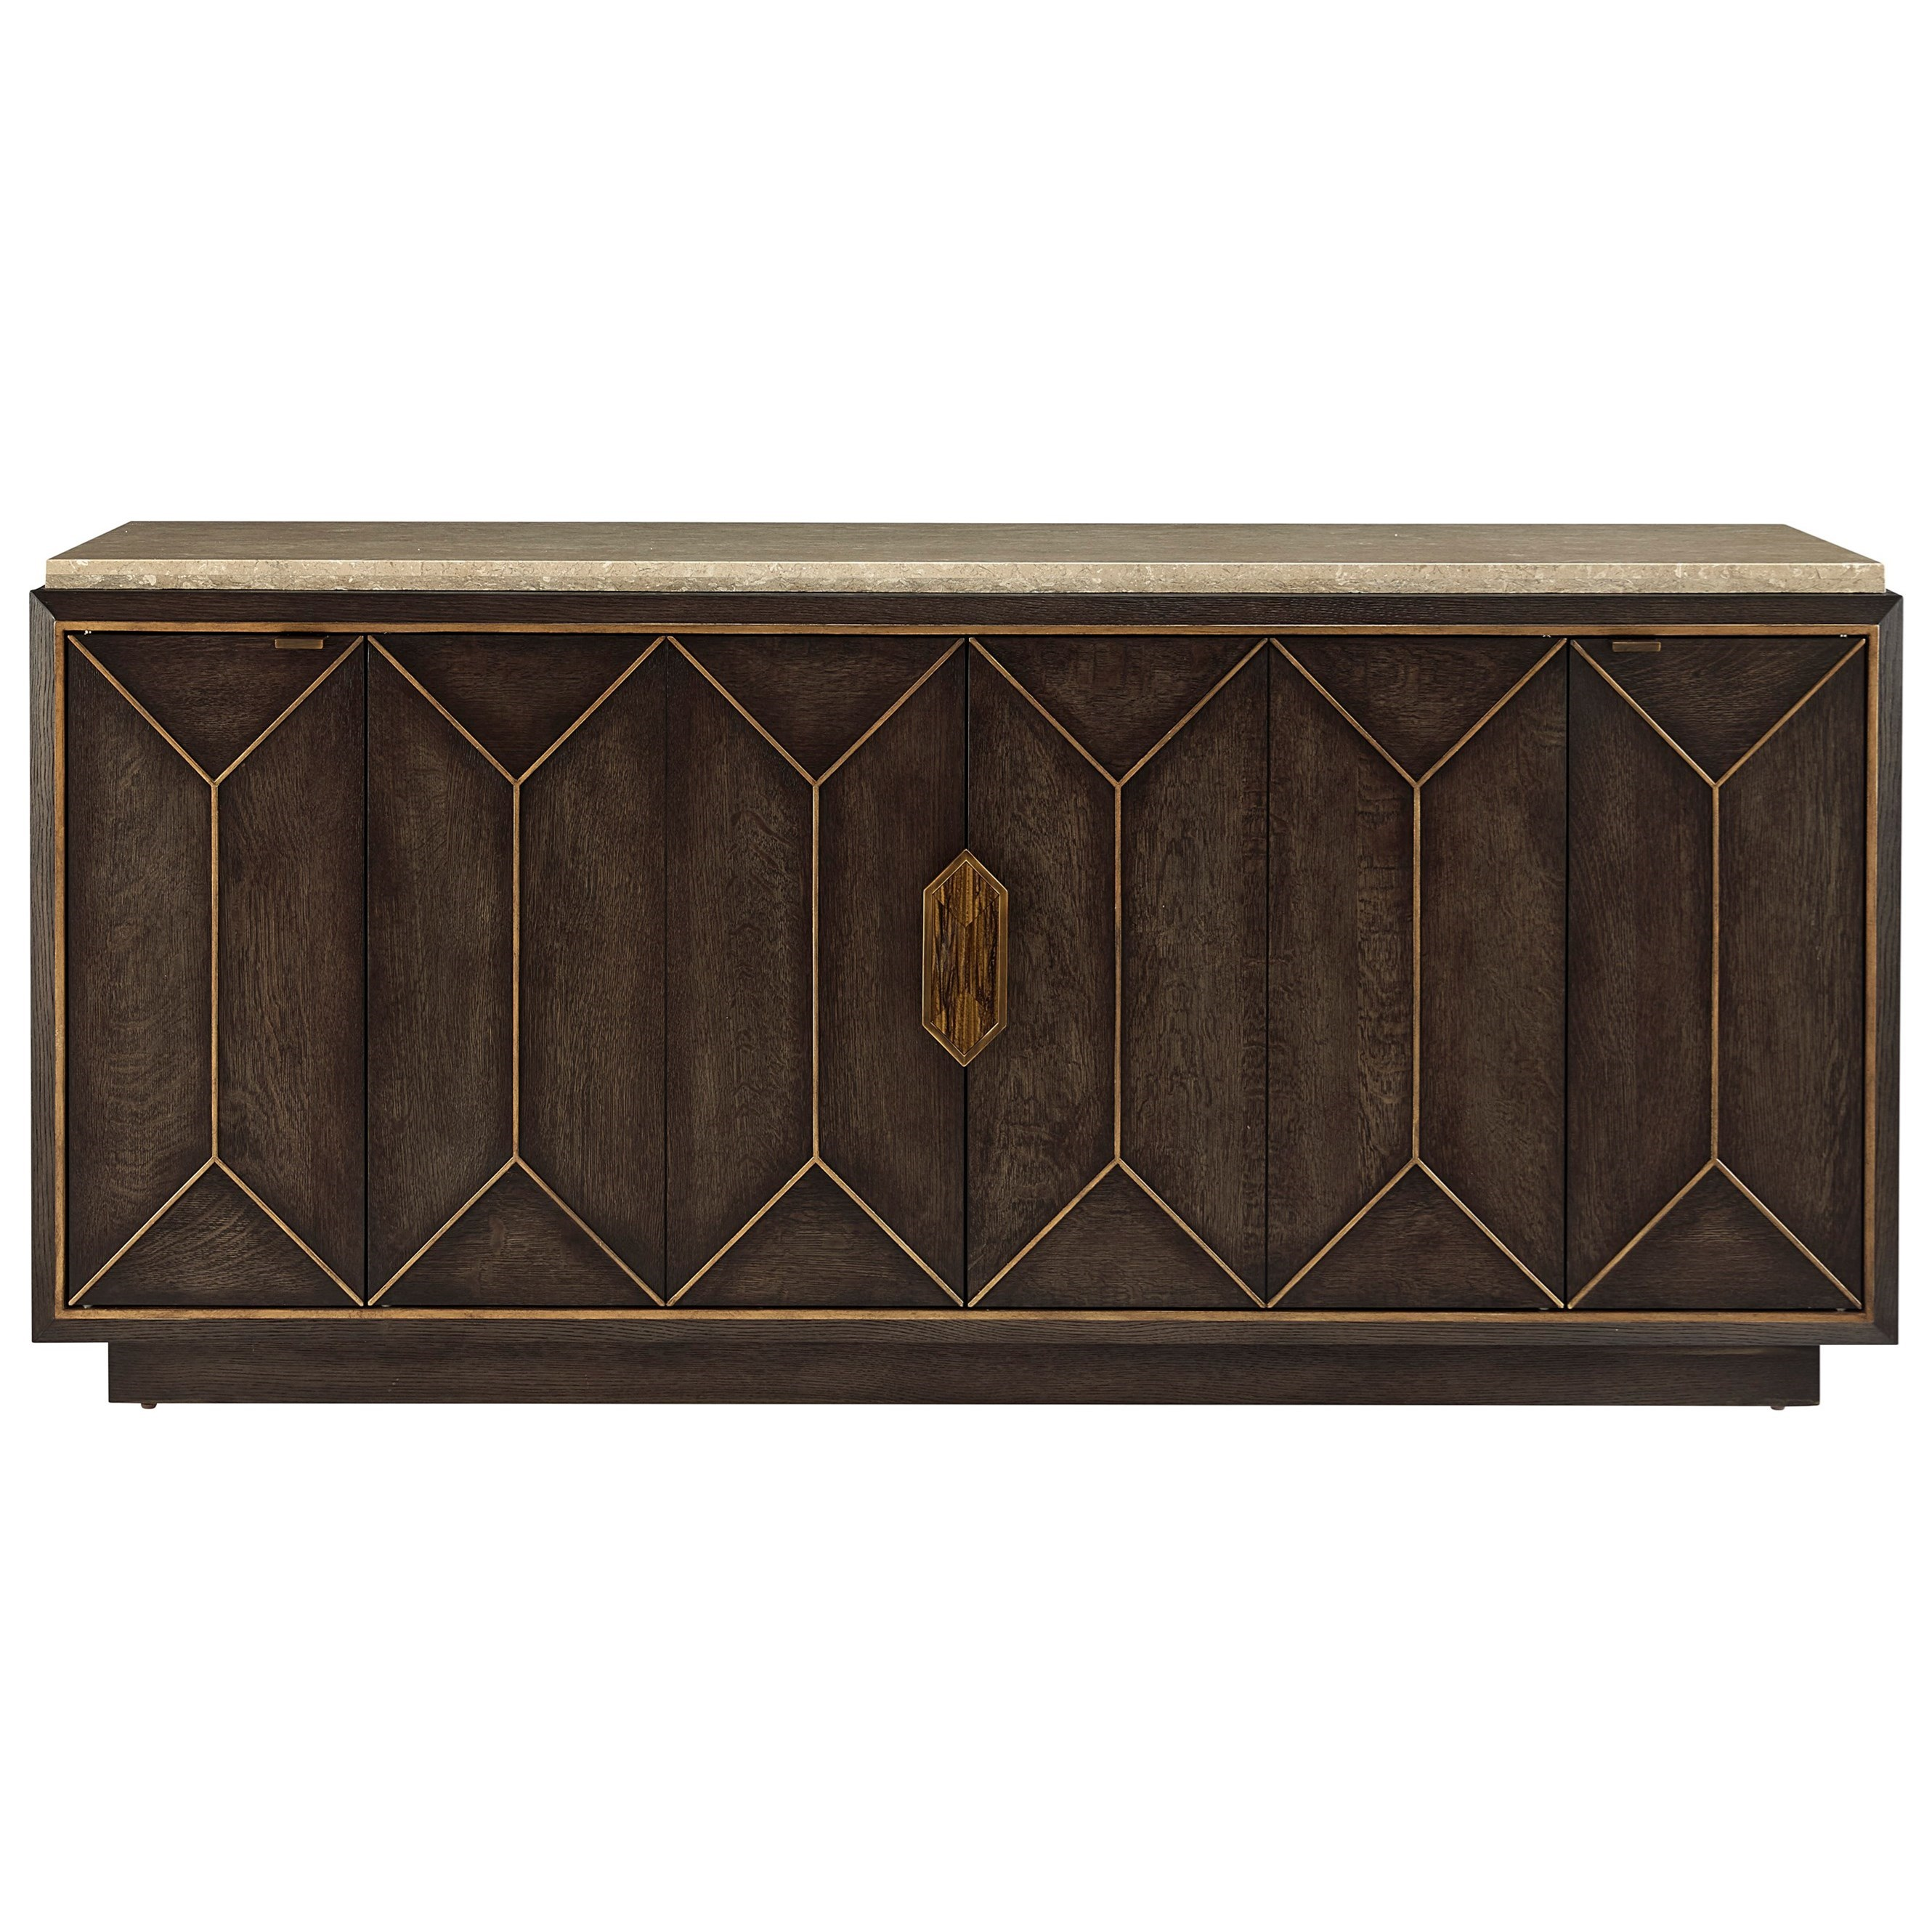 WoodWright Condon Buffet  by A.R.T. Furniture Inc at Darvin Furniture